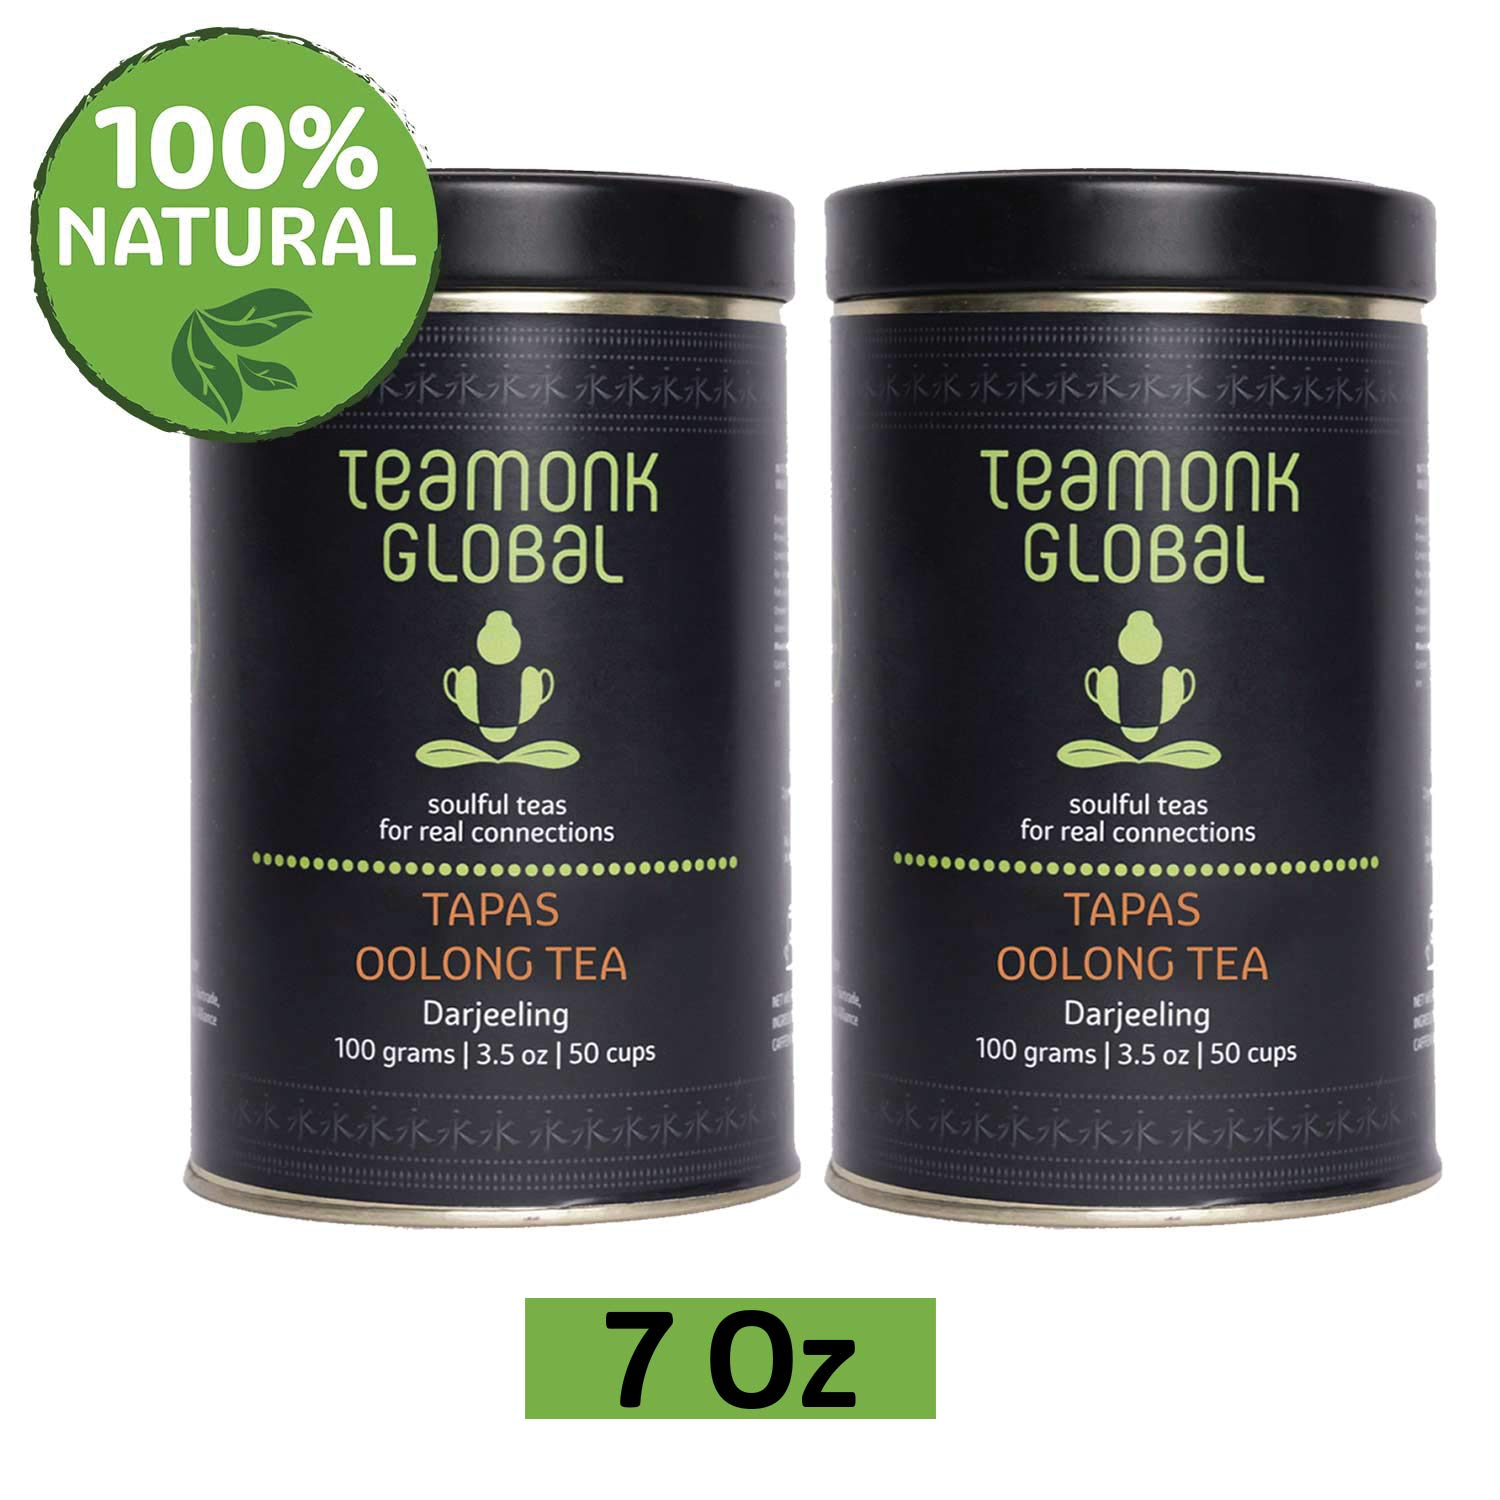 Darjeeling Oolong Tea, 7 oz- Pack of 2 (3.5oz each) |Supports Weight Loss | 100% Natural Whole Loose Leaf Tea fromthe Himalayas|No additives